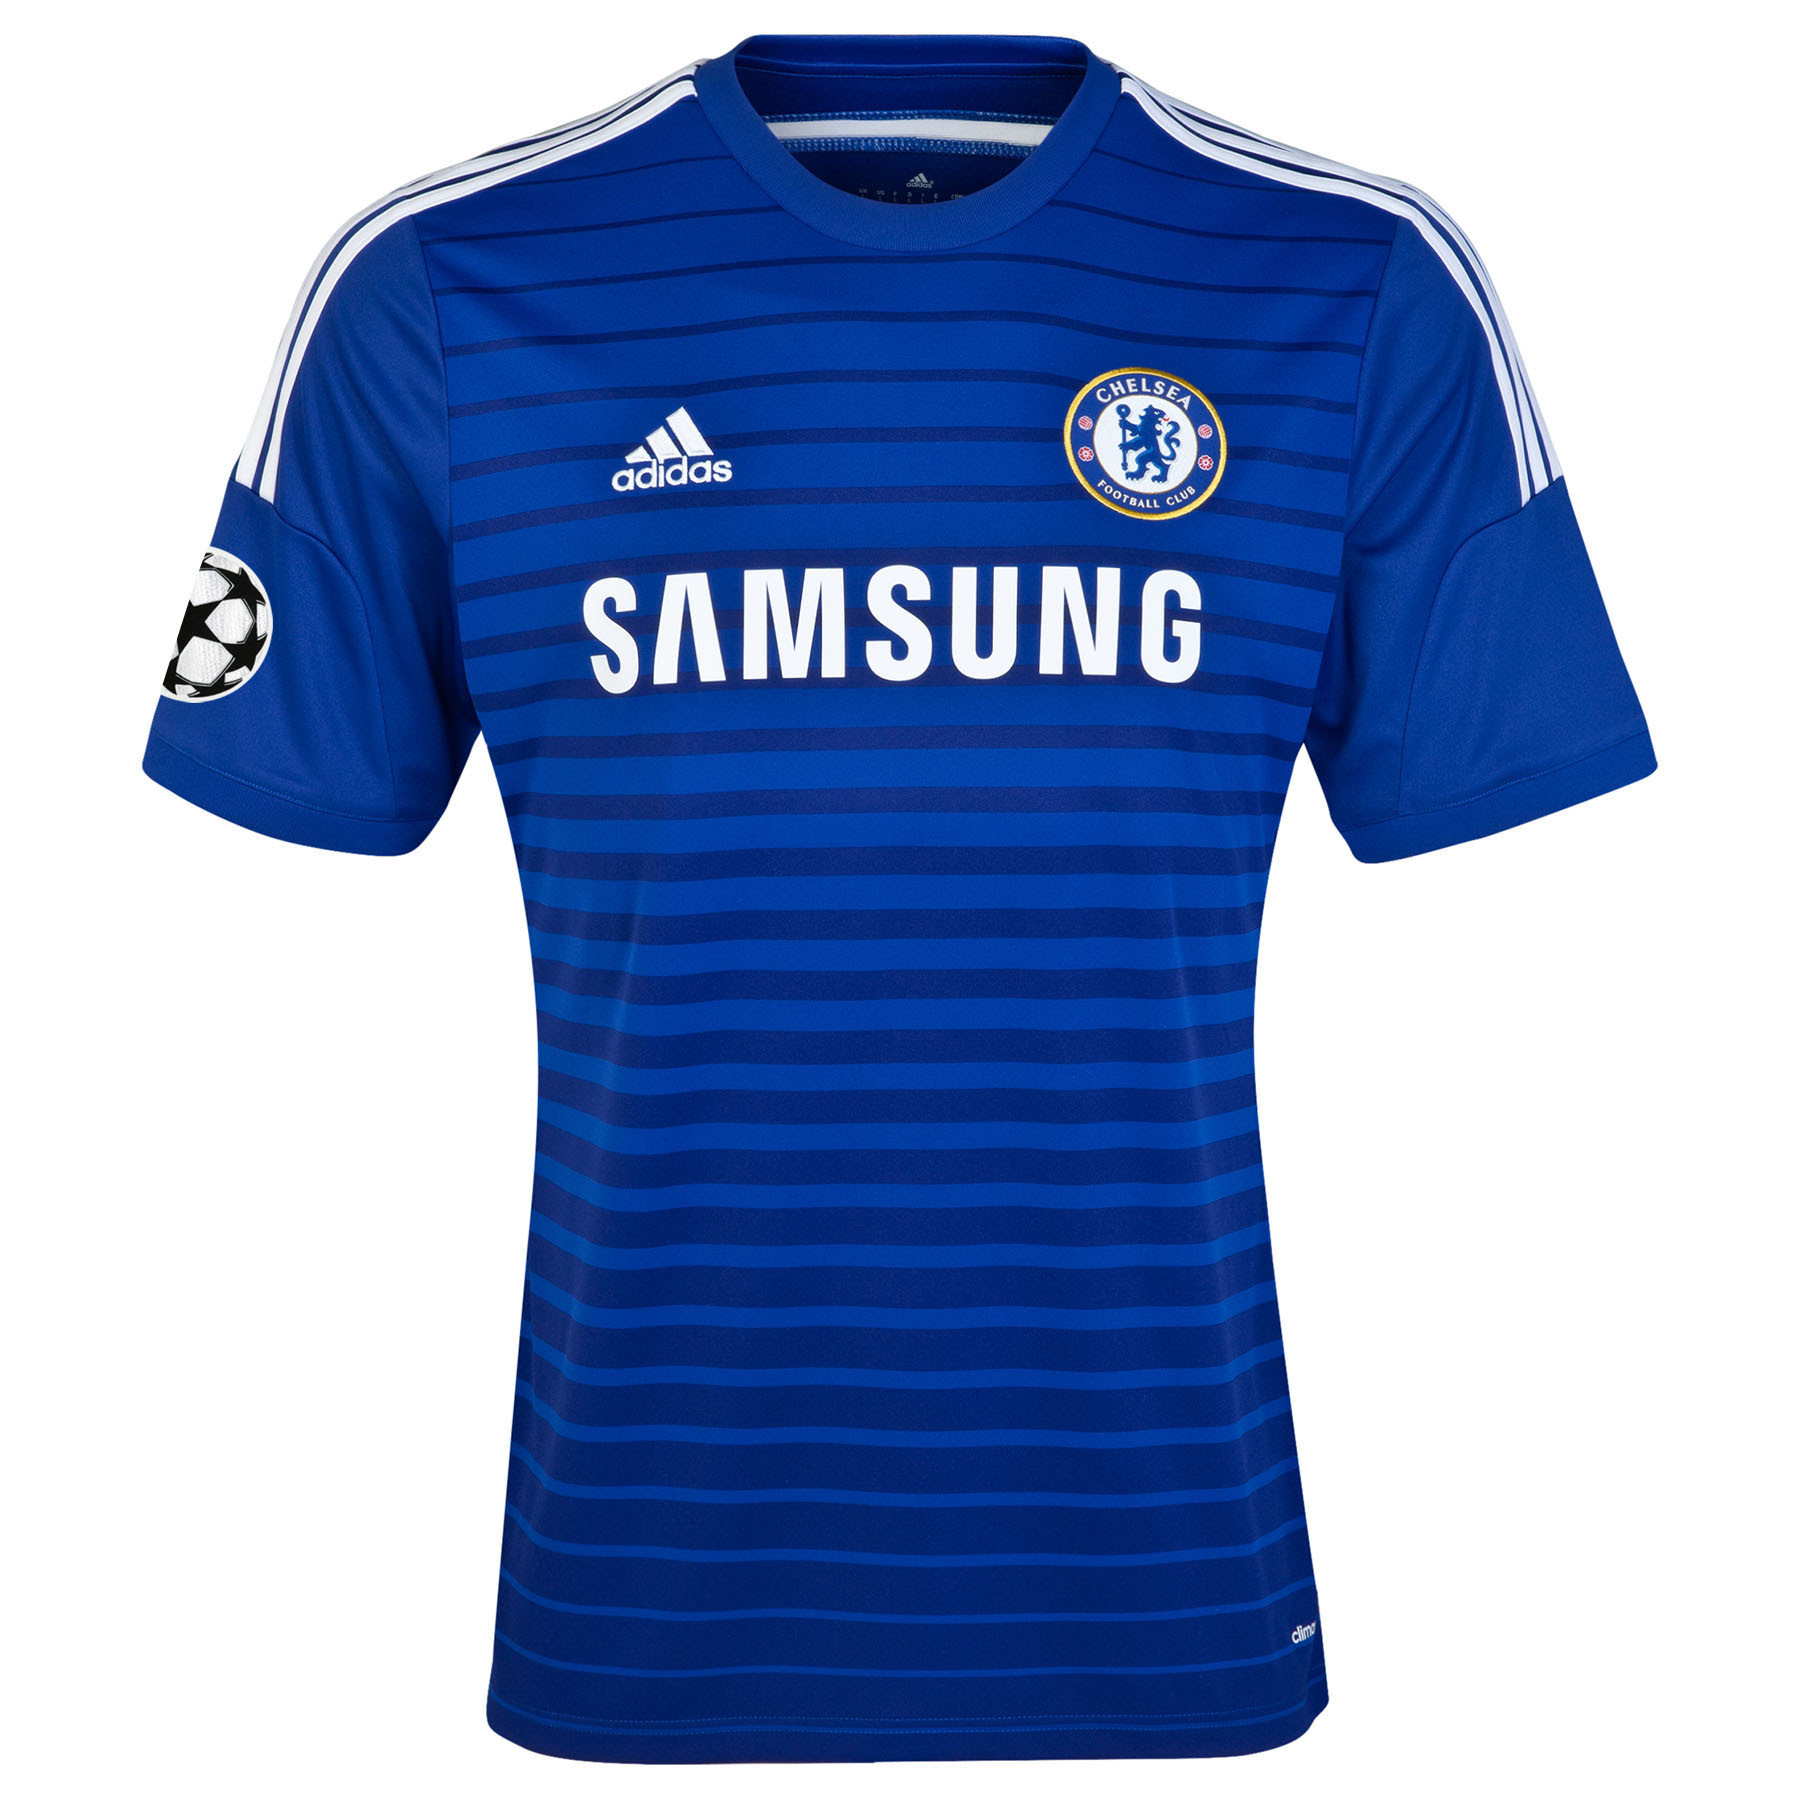 Chelsea UEFA Champions League Home Shirt 2014/15